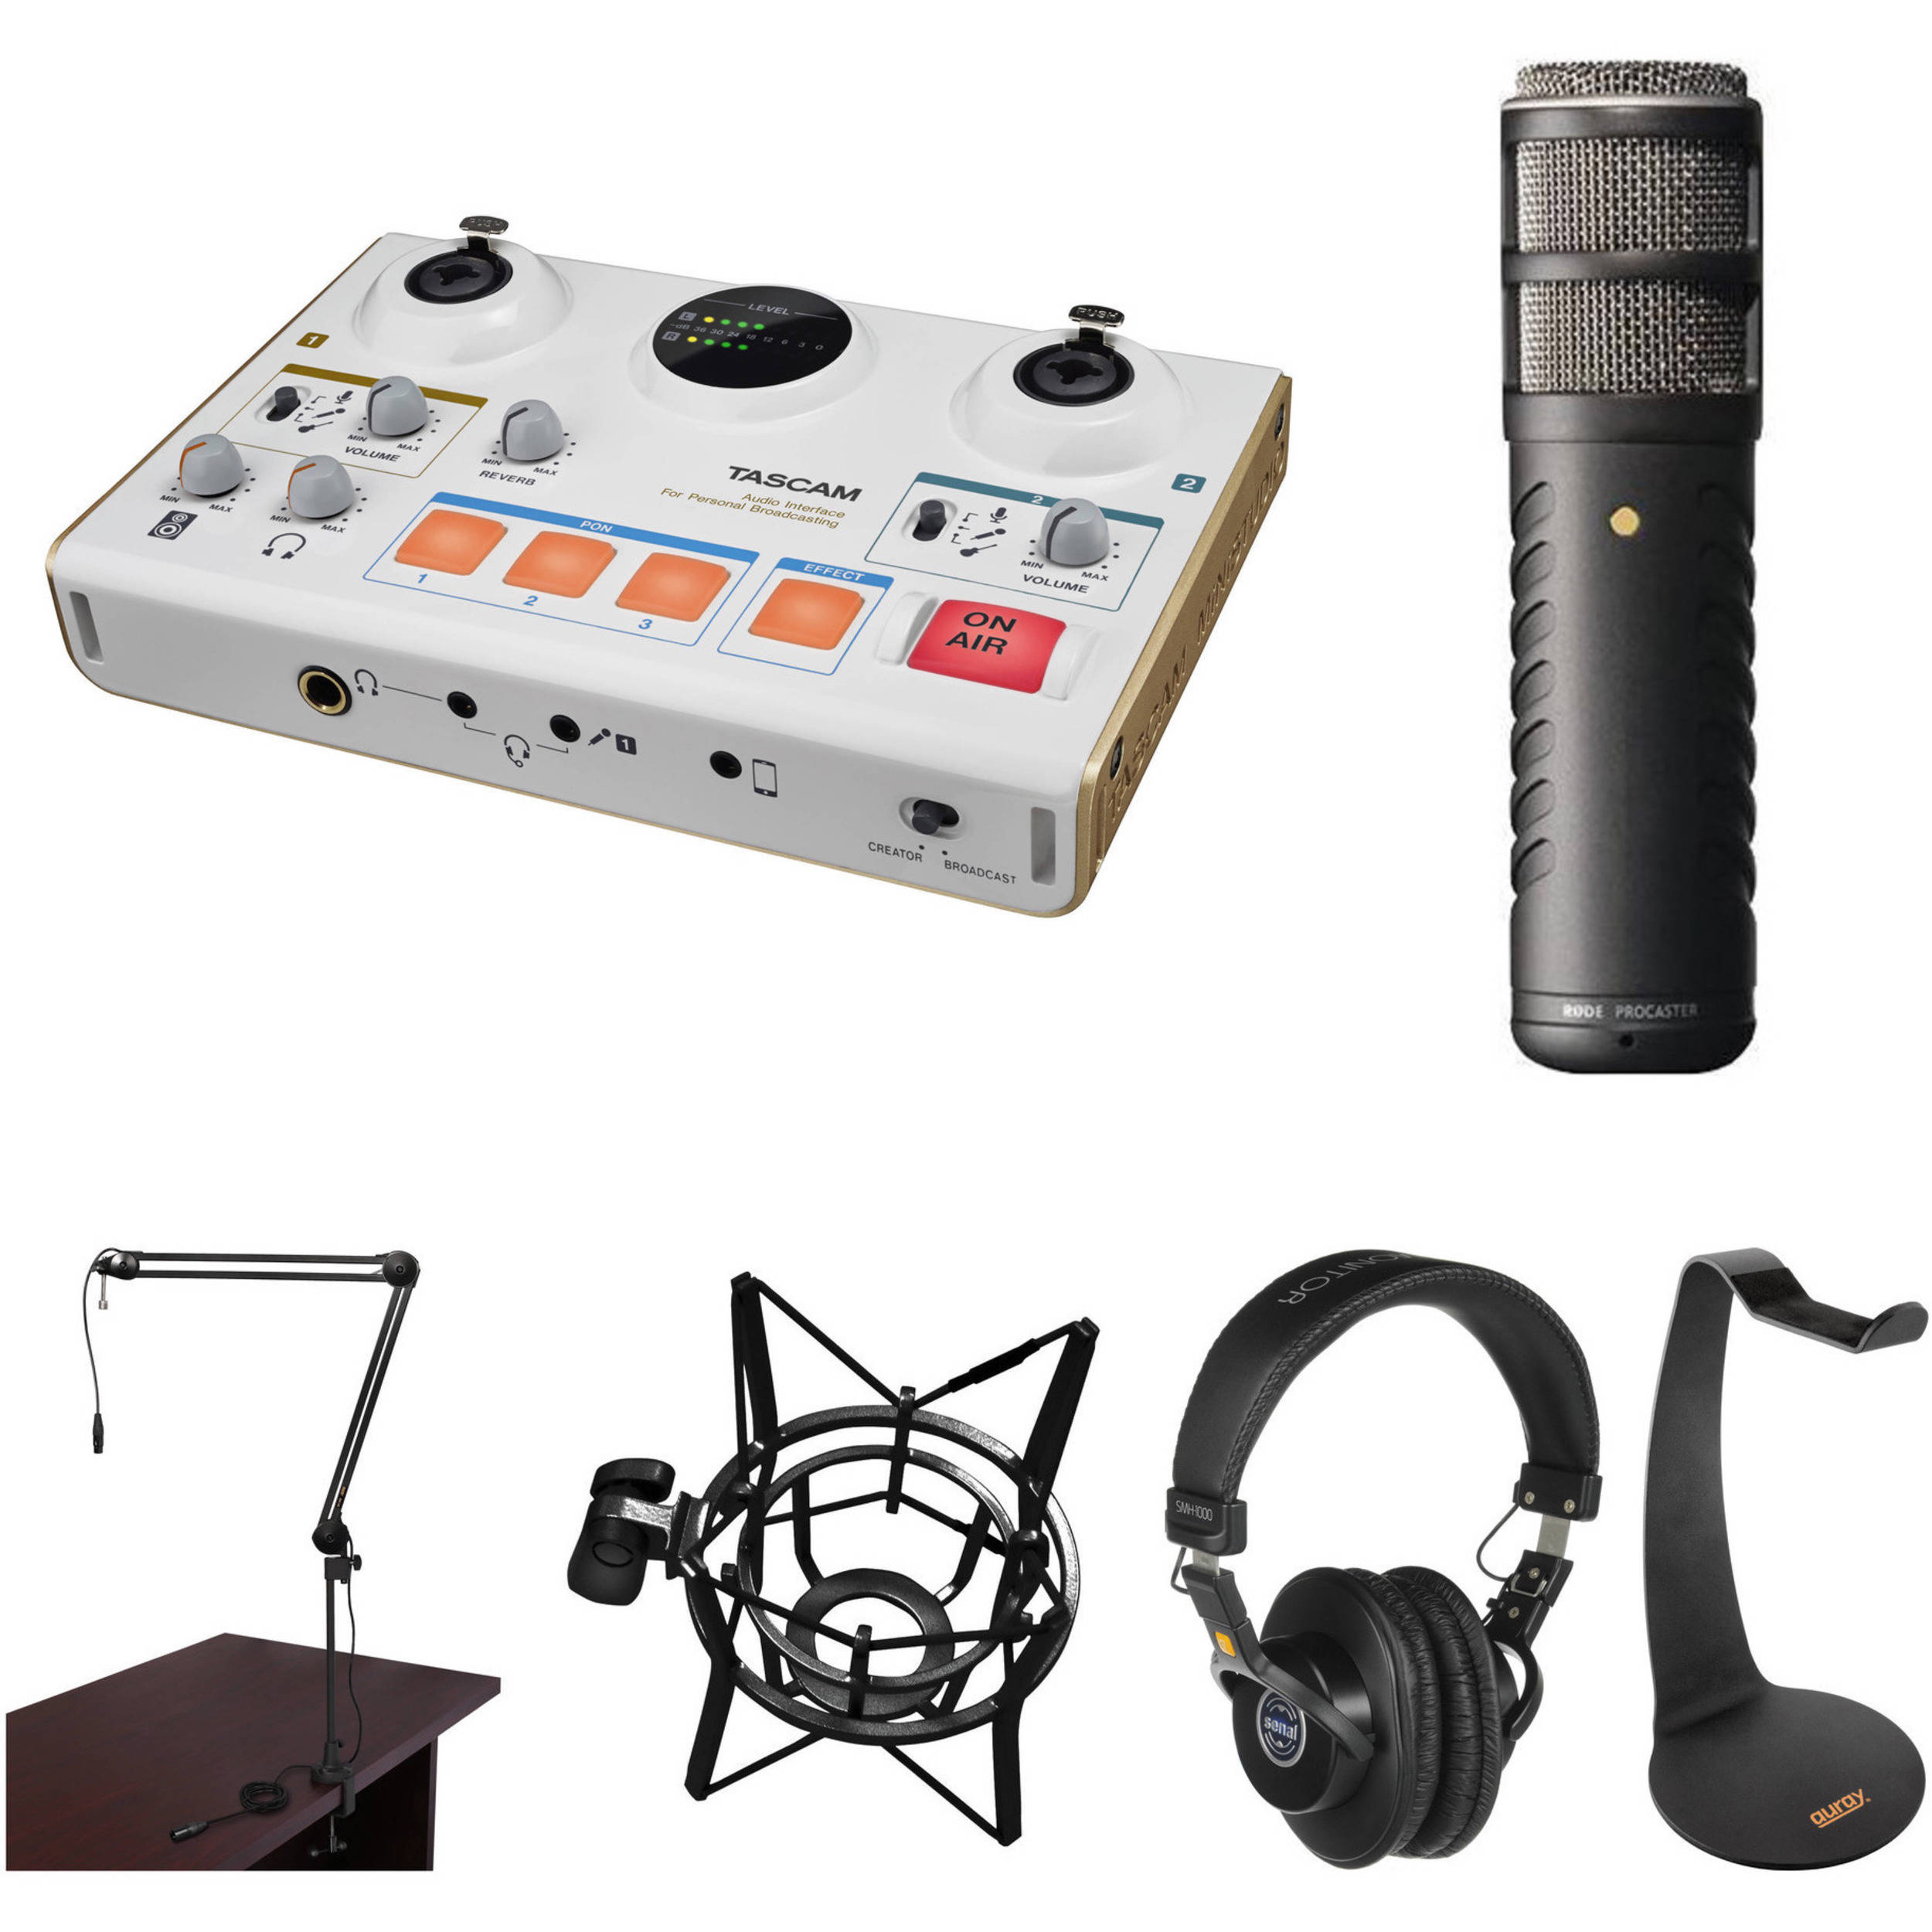 Ministudio Creator Us 42 Podcast Studio With One Rode Procaster Dynamic Mic Senal Headphones And Broadcast Arm Kit Explore Nes Circuit Bend More Audio Tascam